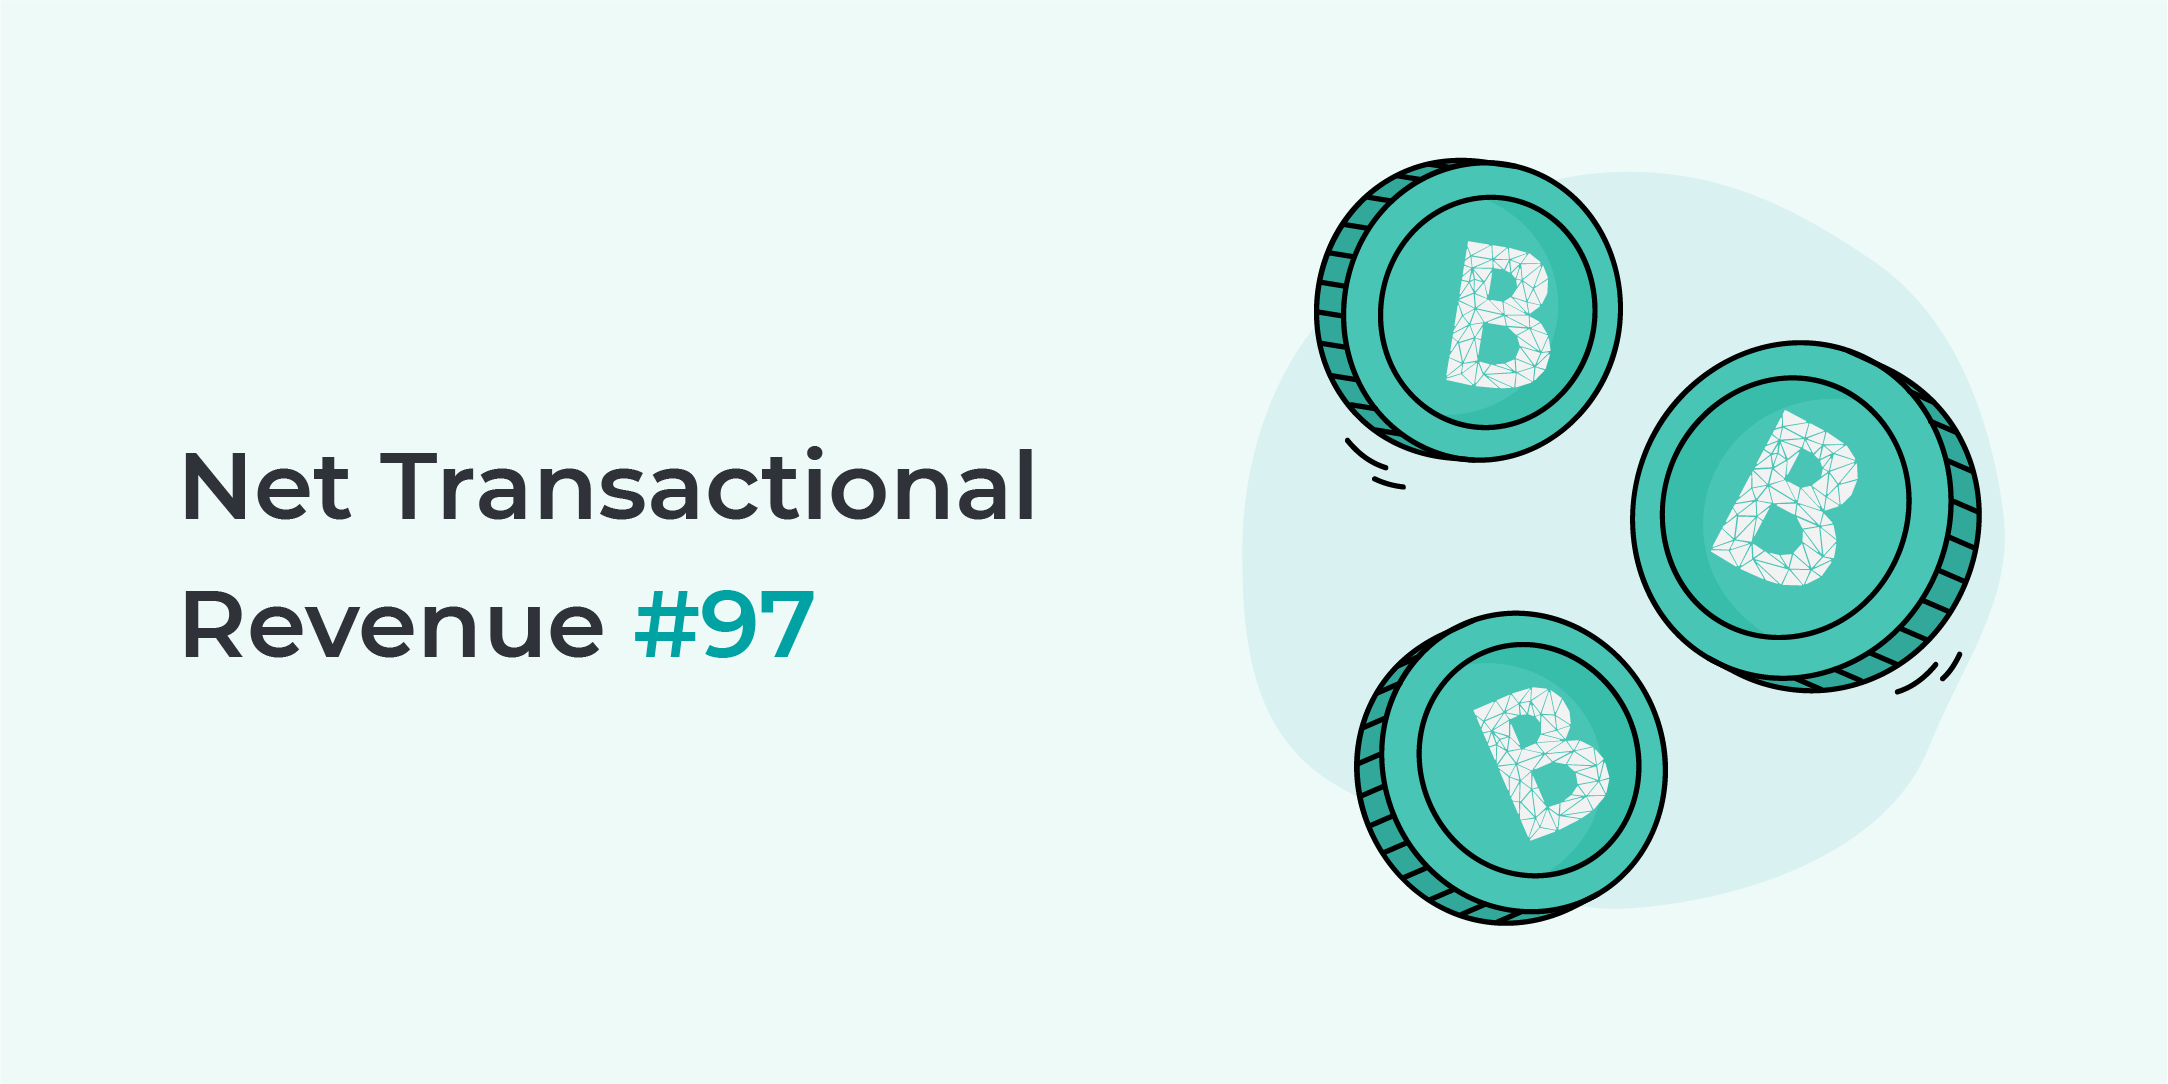 Bankera's Net Transactional Revenue No. 97